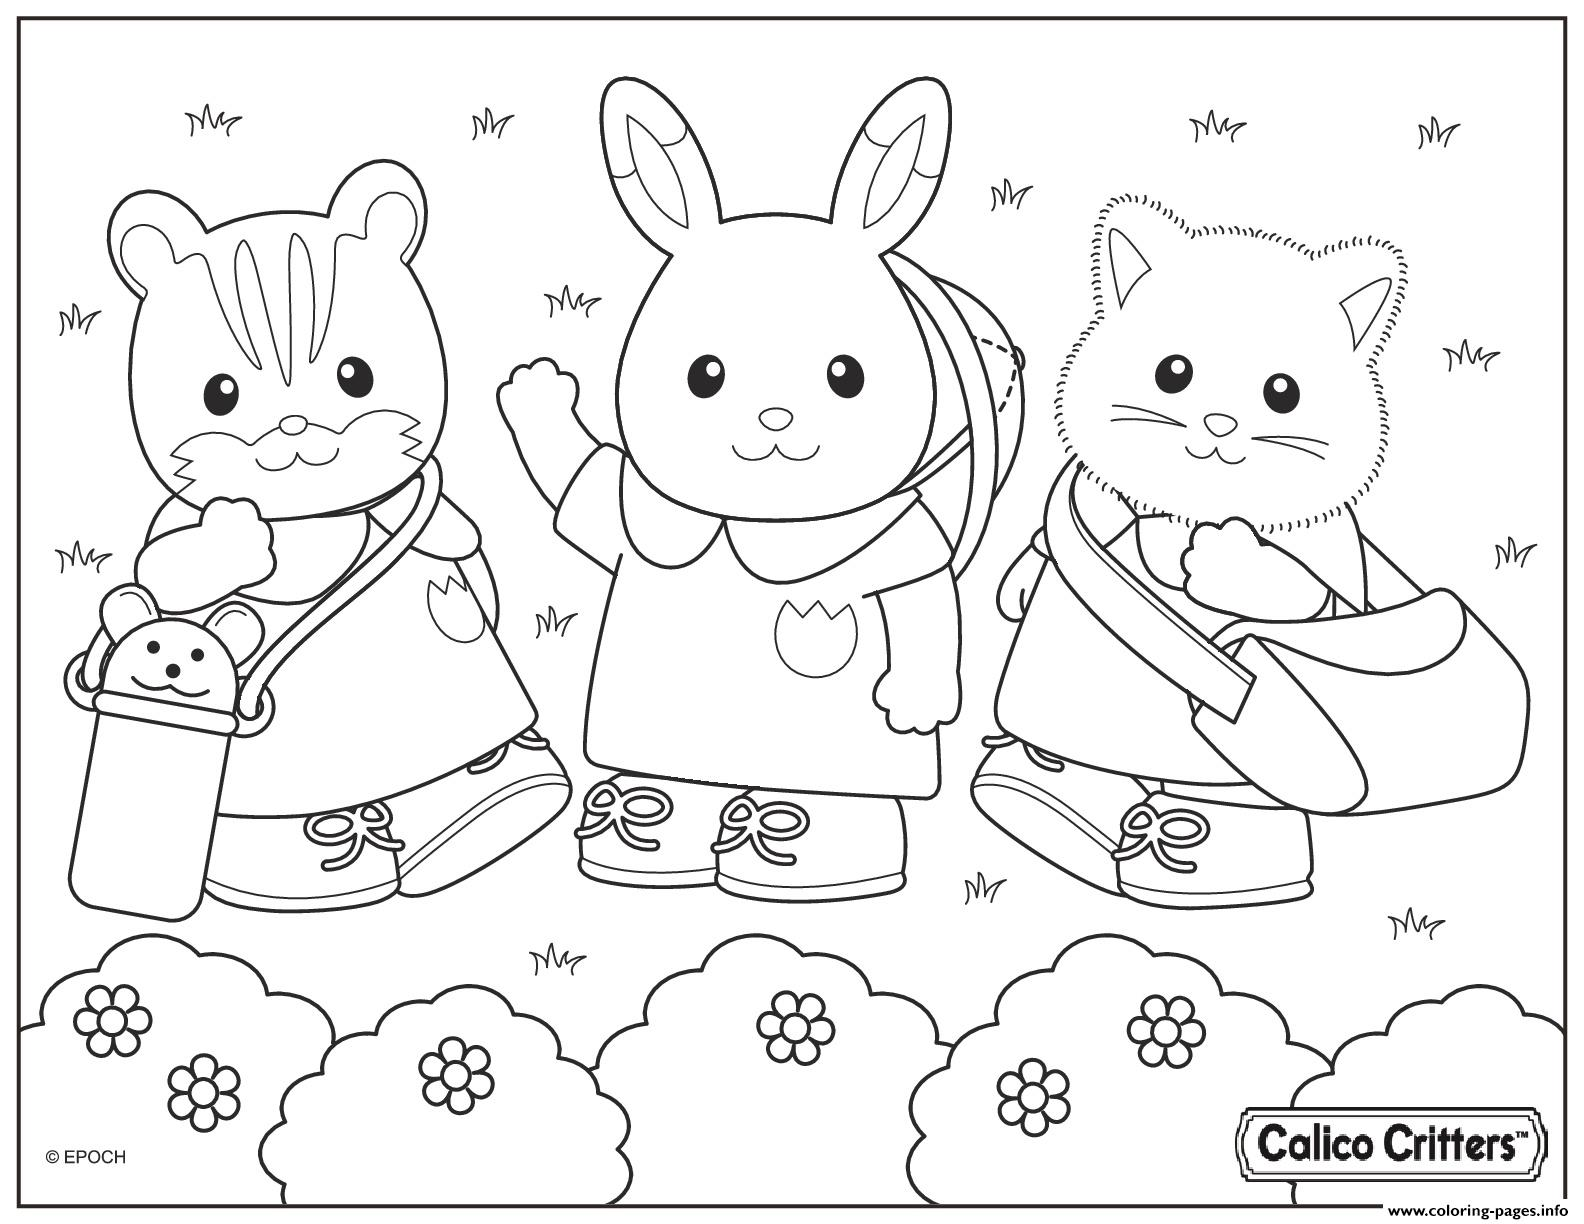 Calico critters in the park coloring pages printable for Little critter coloring pages